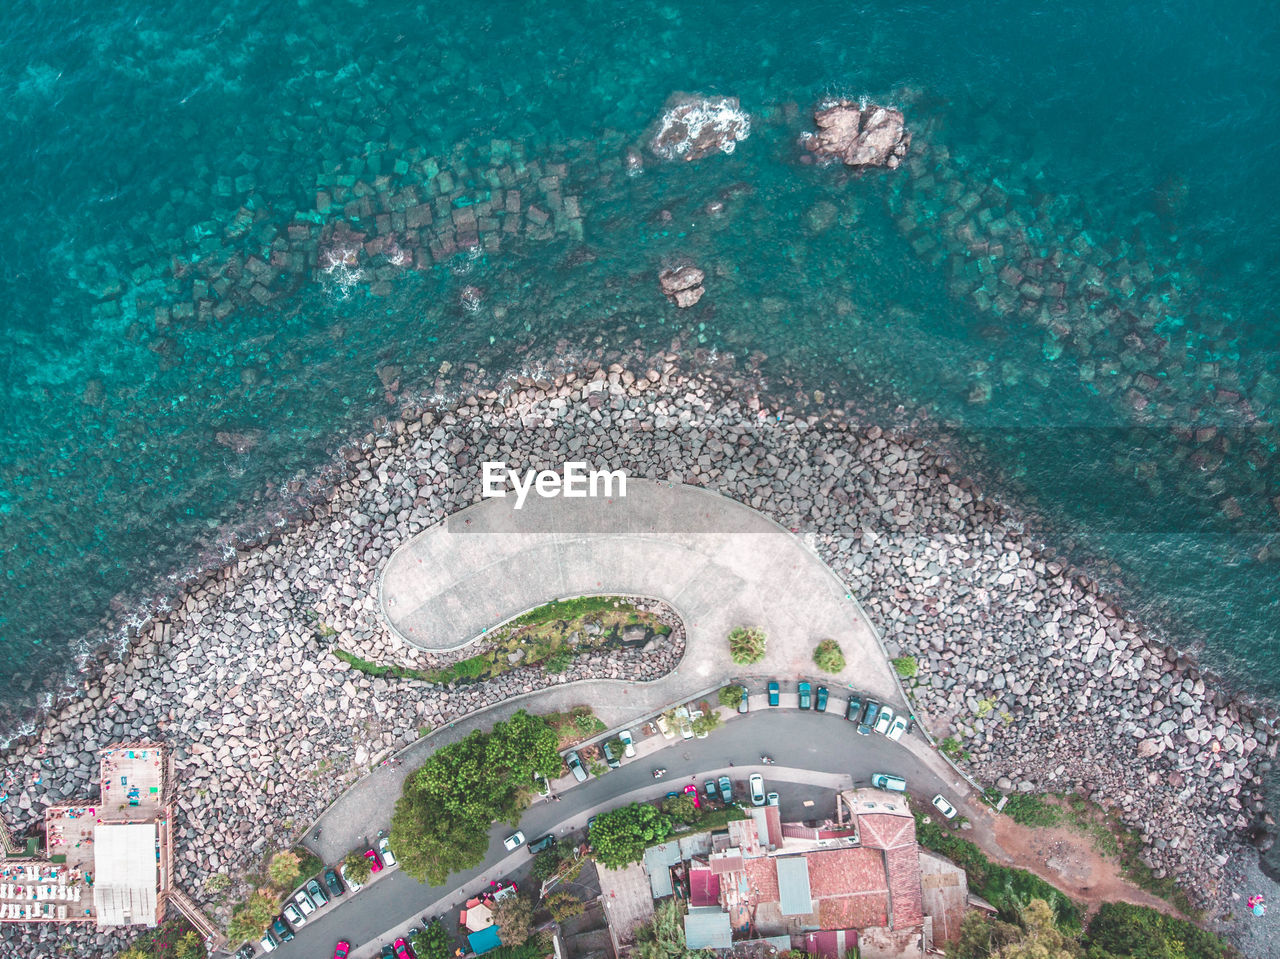 sea, high angle view, water, nature, architecture, aerial view, city, day, outdoors, building exterior, built structure, beach, people, travel, land, travel destinations, plant